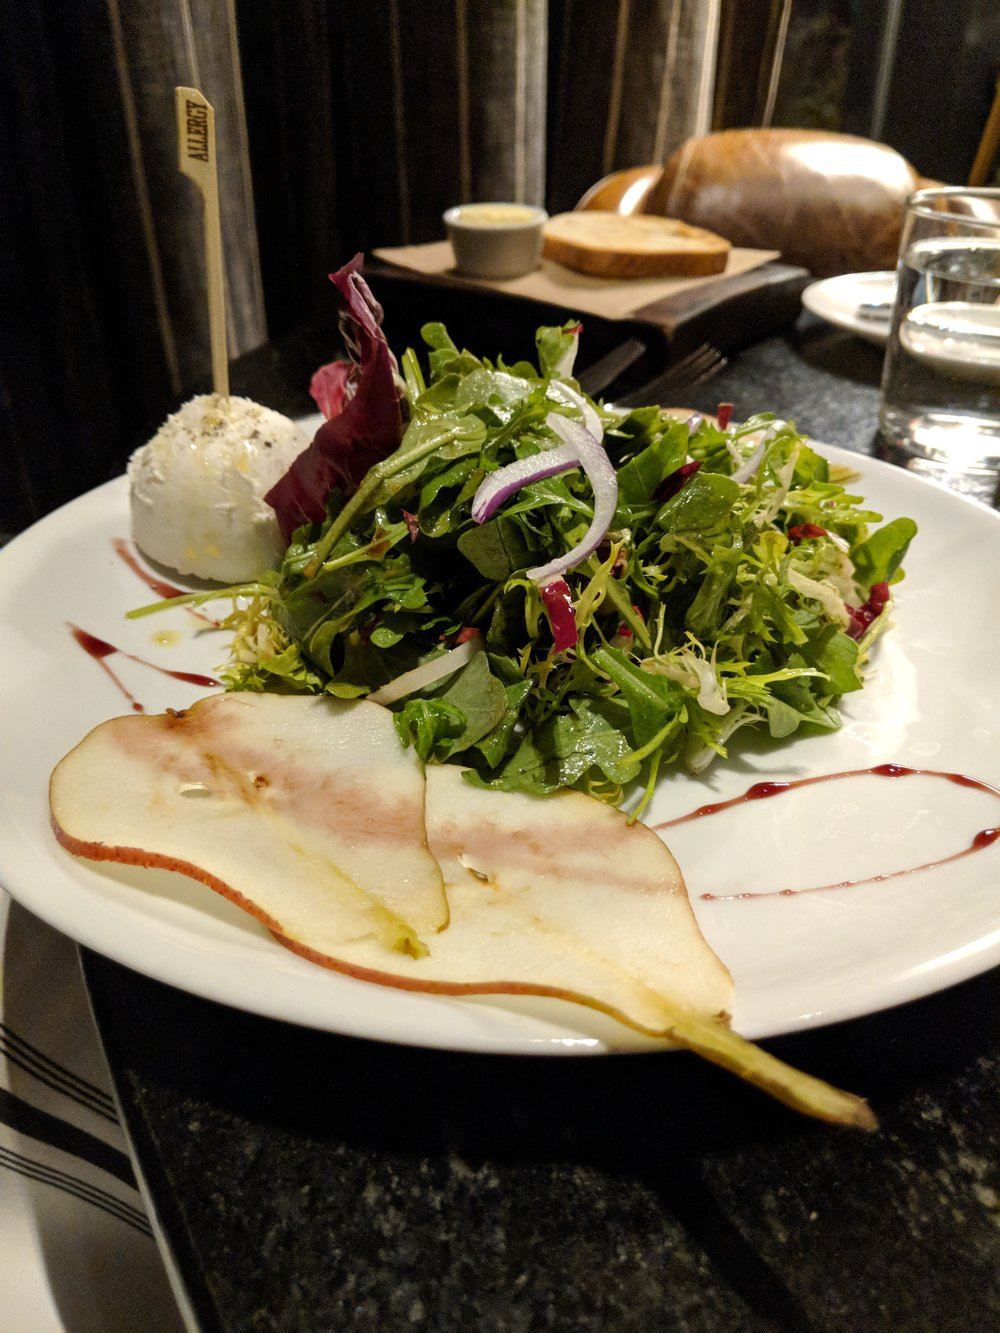 Awesome arugula, goat cheese, and pear salad at The Bancroft. That's an allergy pick in the cheese! ;)